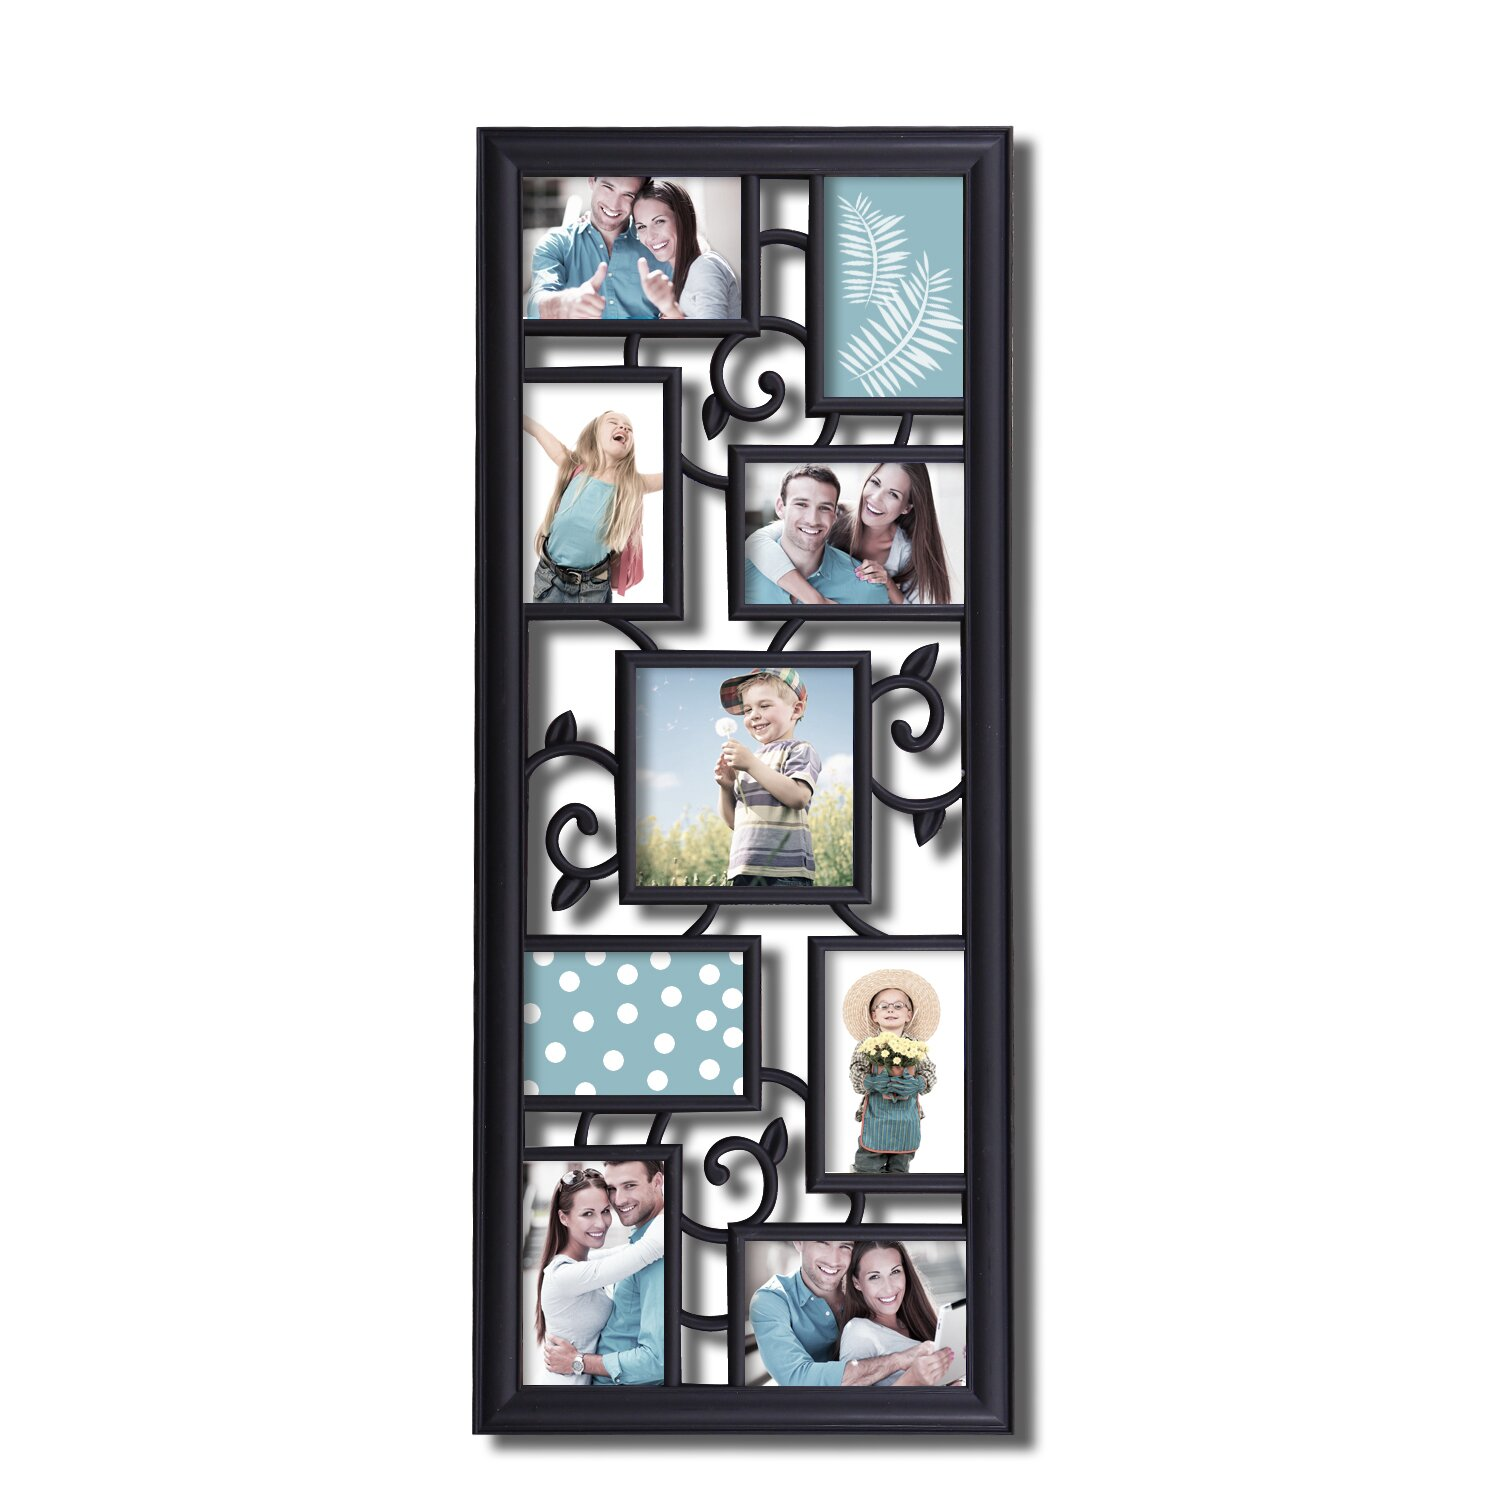 adecotrading 9 opening decorative filigree wall hanging collage picture frame wayfair. Black Bedroom Furniture Sets. Home Design Ideas